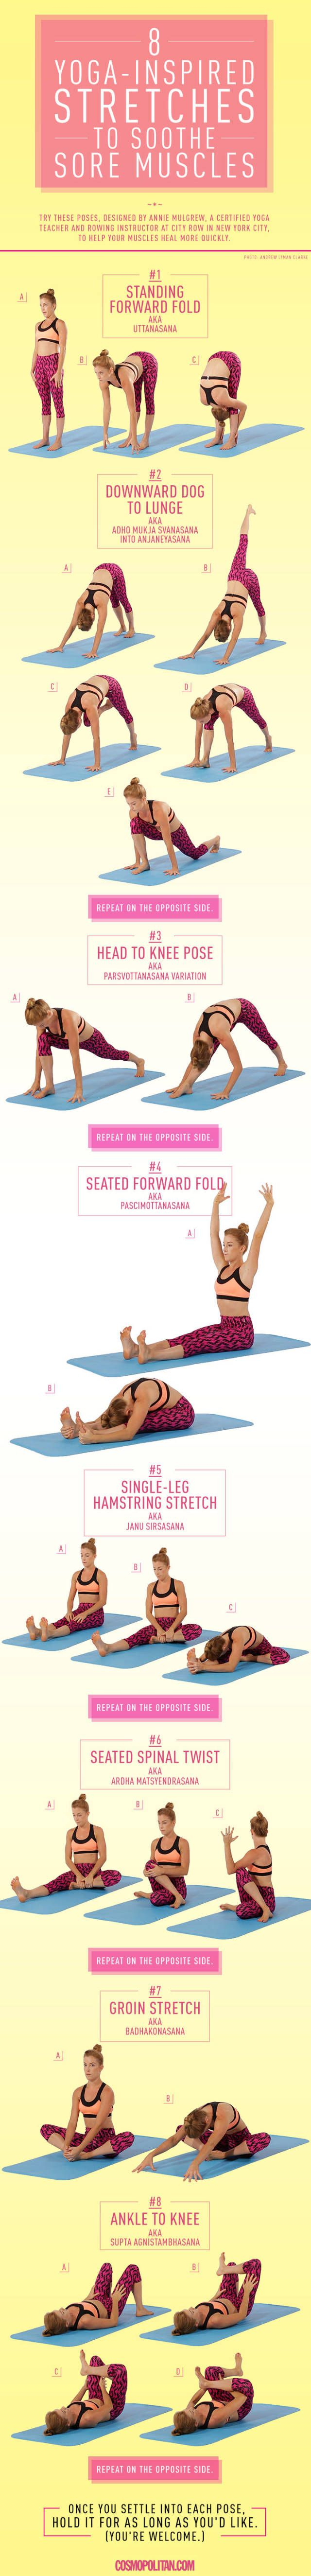 yoga for sore muscles.